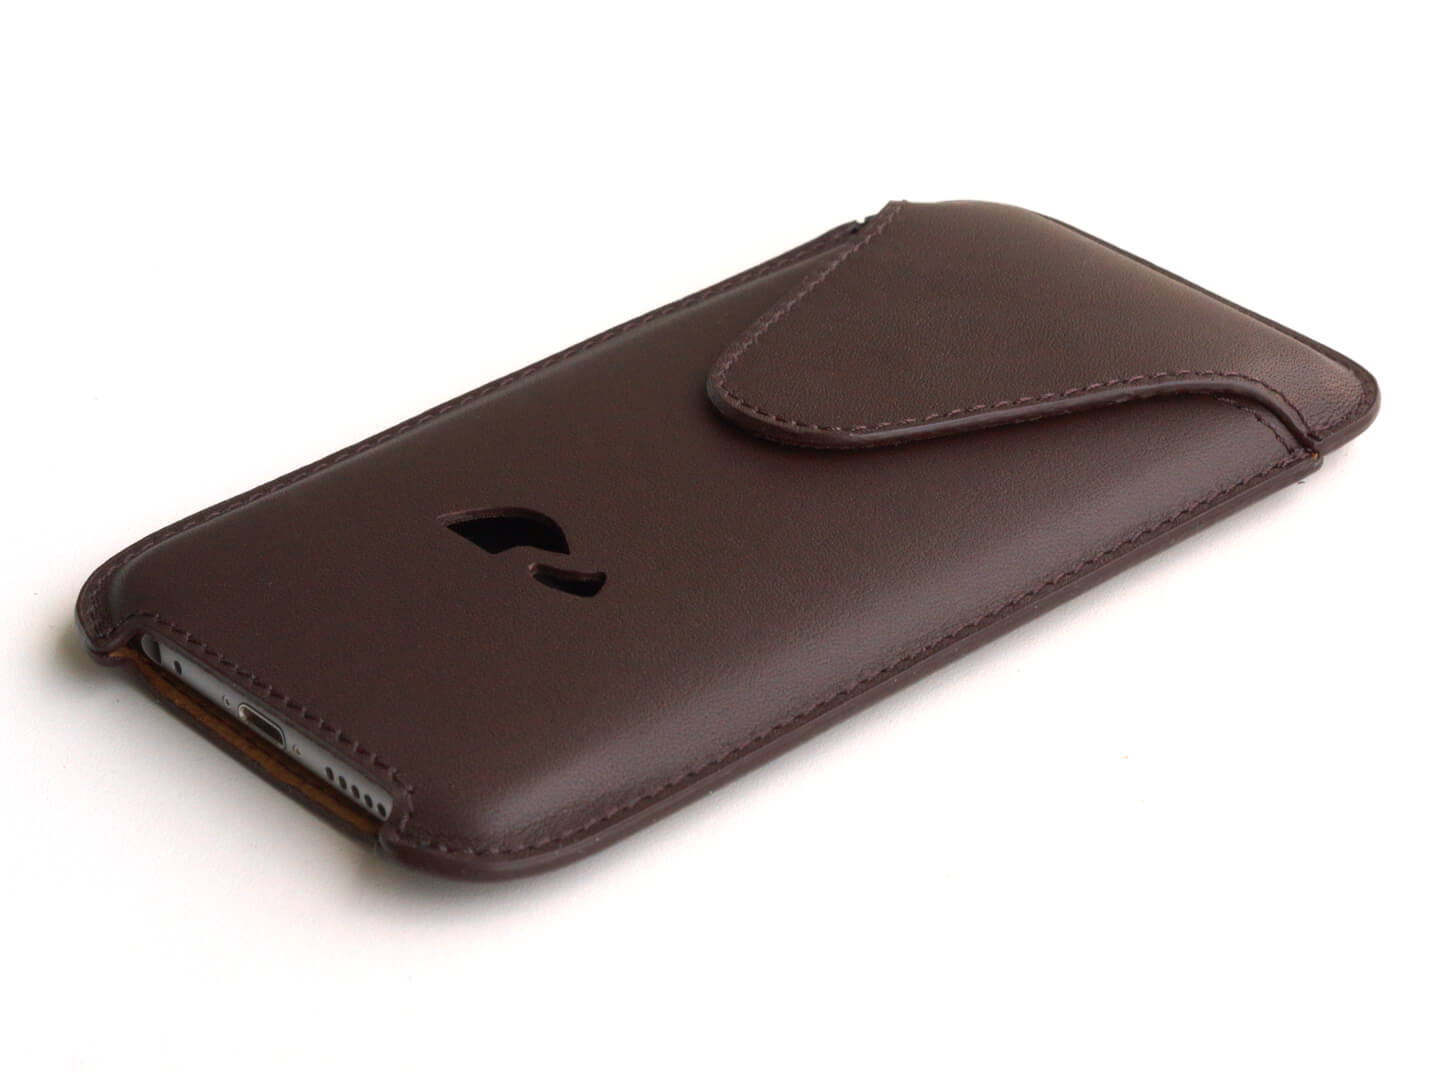 best sneakers 421dc 206d6 LEATHER POUCH iPHONE 6 / 6 PLUS / 7 / 7 PLUS / 8 / 8 PLUS / XS Max - BROWN